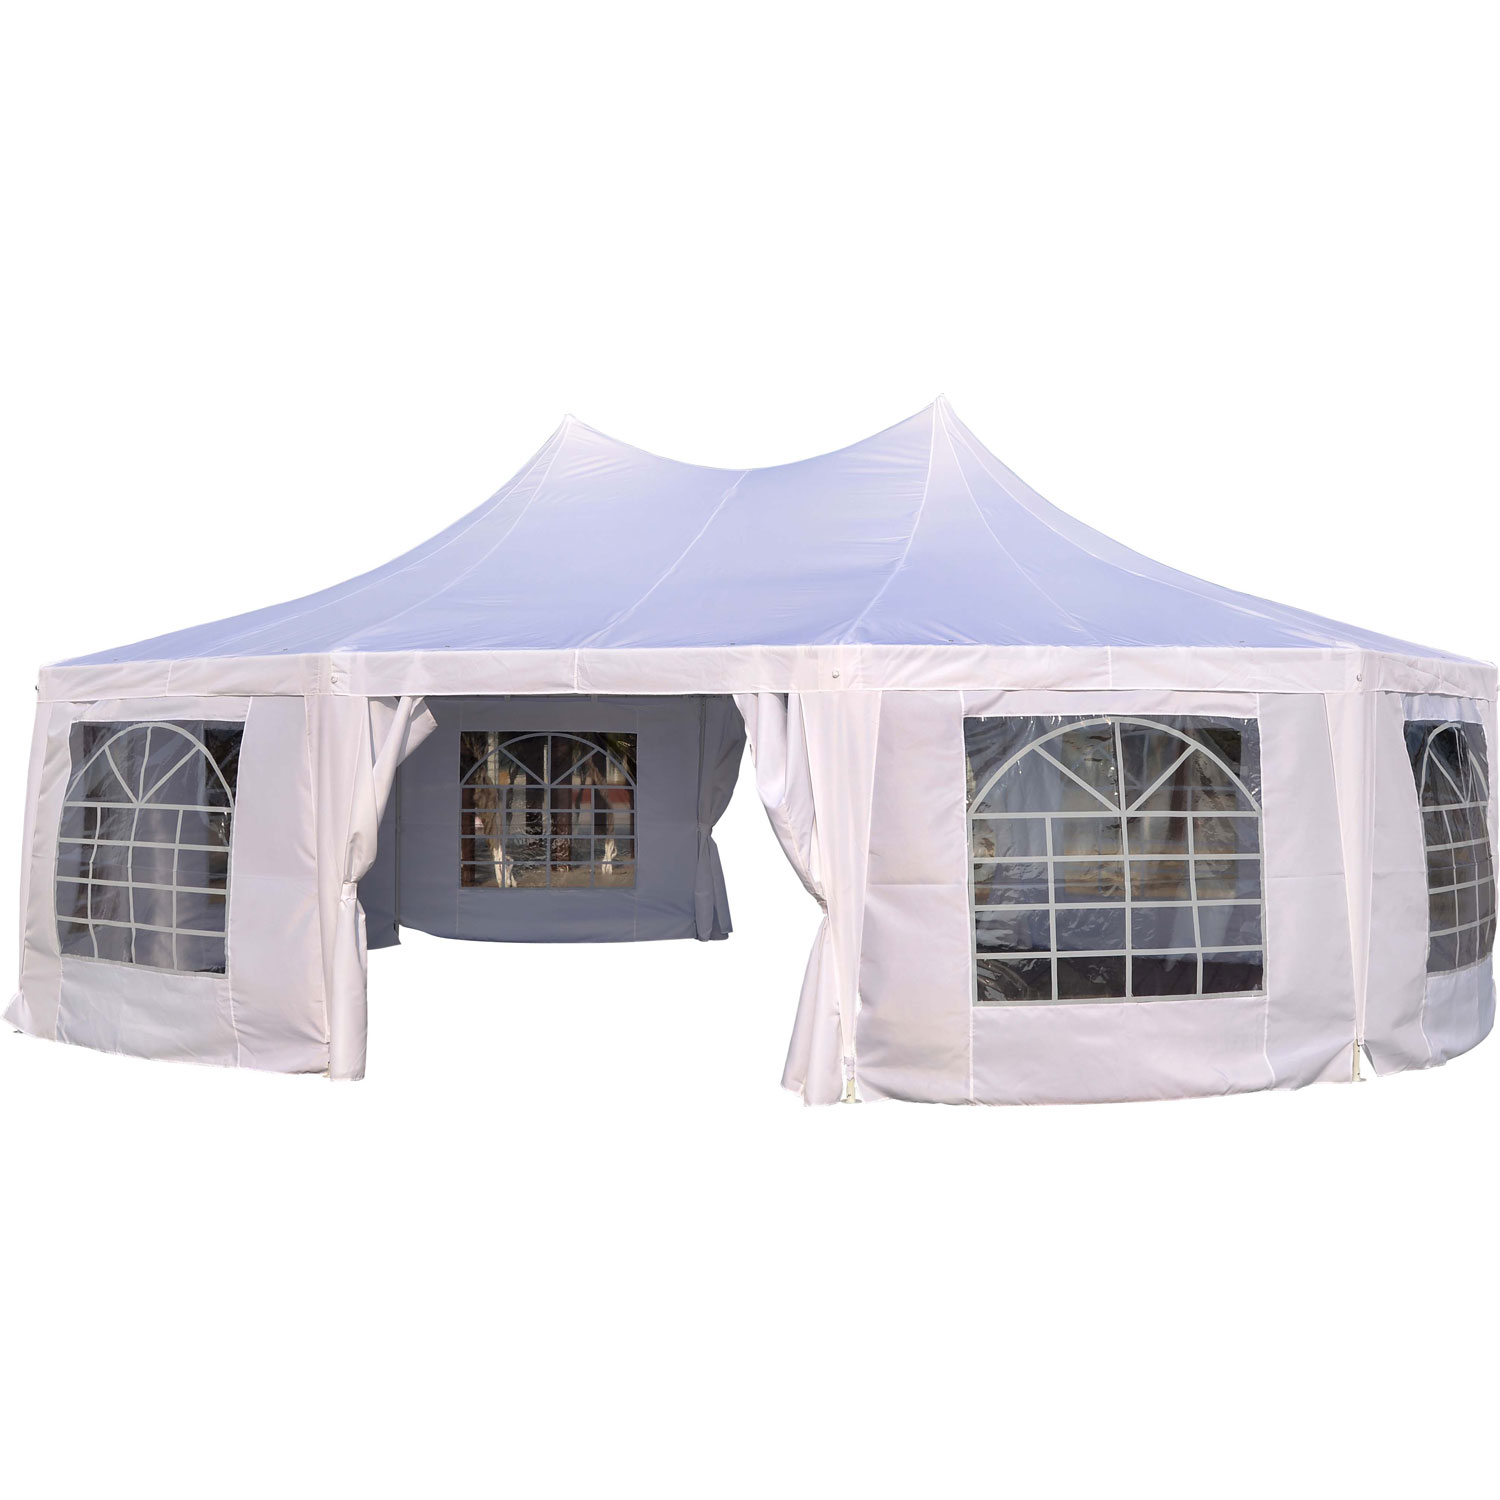 Outsunny 29u0027 x 20u0027 Large Heavy Duty Decagon 10-Wall Party Wedding Gazebo  sc 1 st  Walmart & Outsunny 29u0027 x 20u0027 Large Heavy Duty Decagon 10-Wall Party Wedding ...